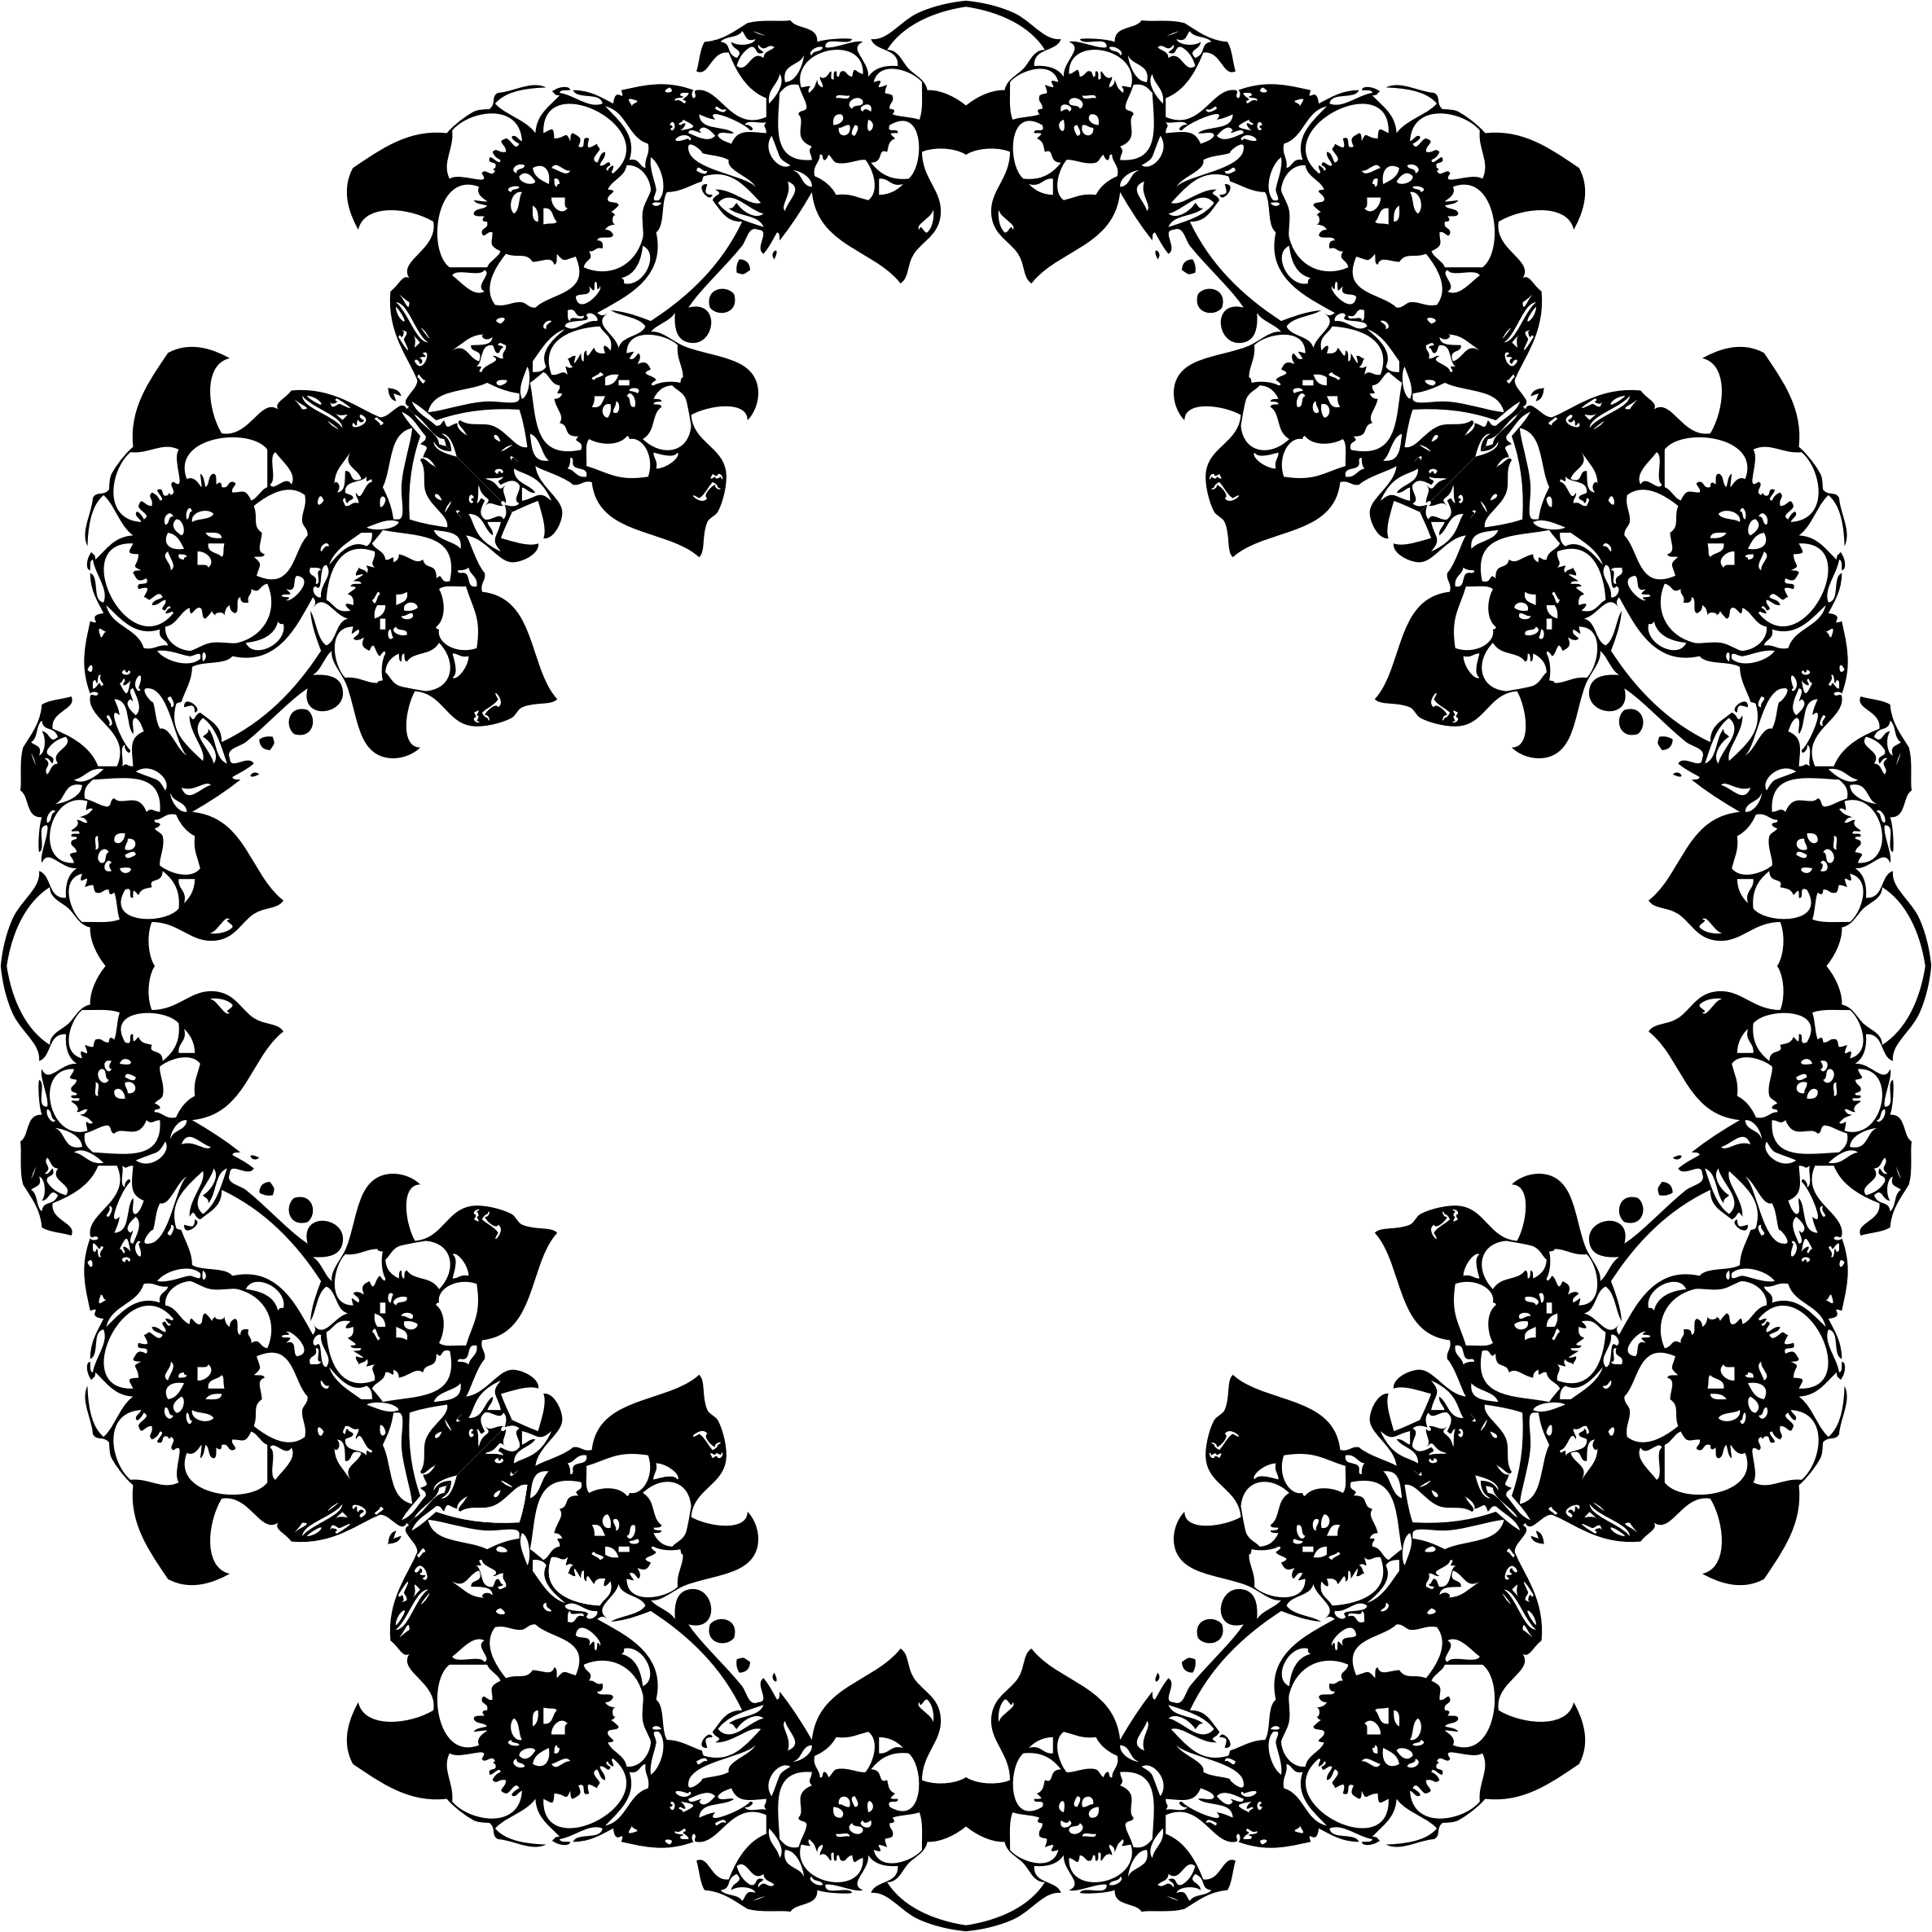 Vintage floral design. Flower wreath clipart black and white